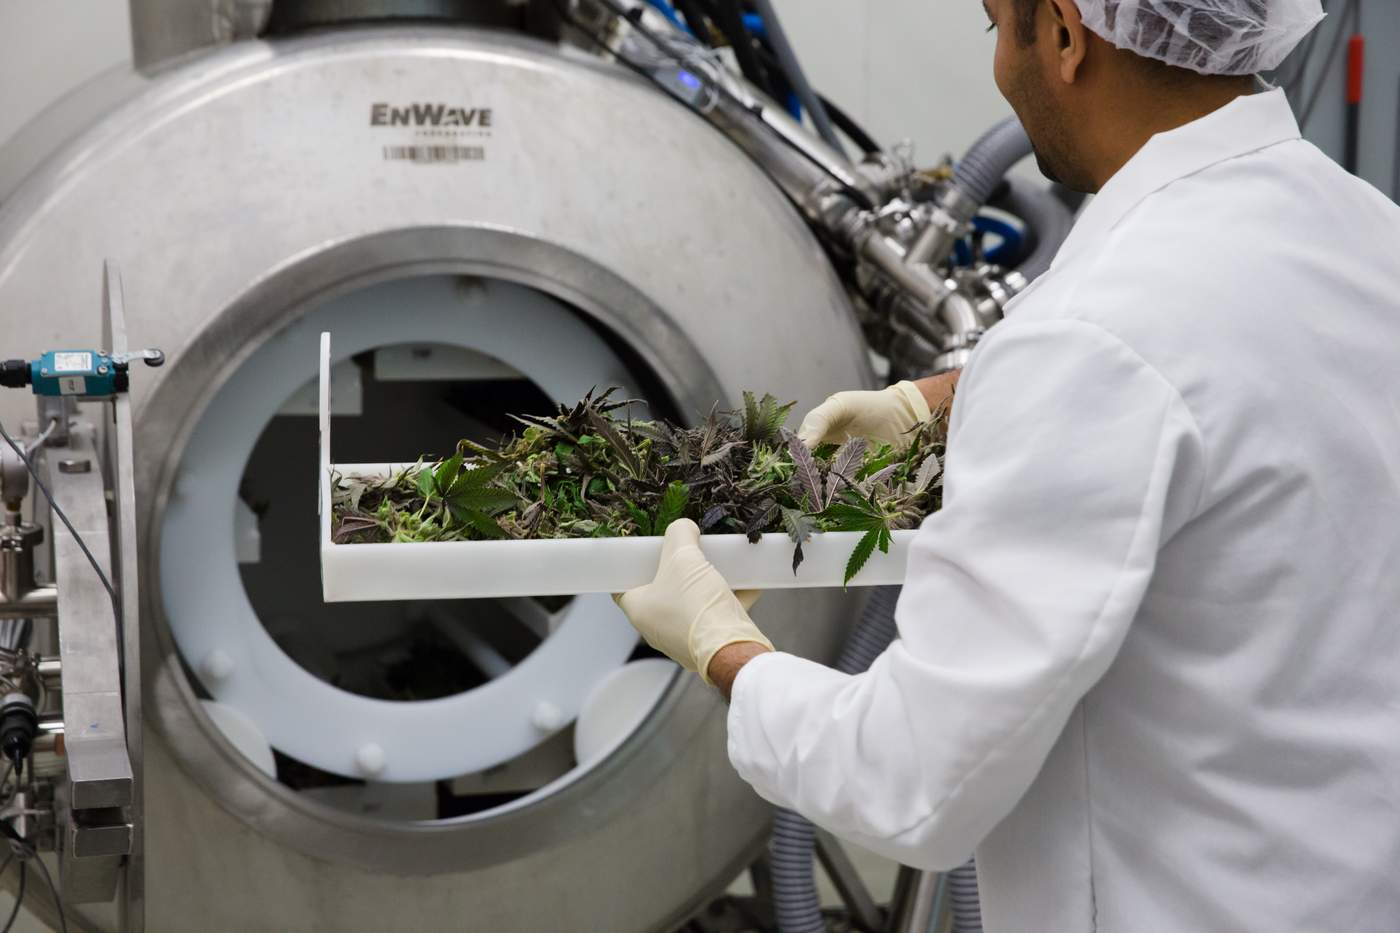 EnWave Announces Changes to its Equipment Purchase Agreement with The Green Organic Dutchman